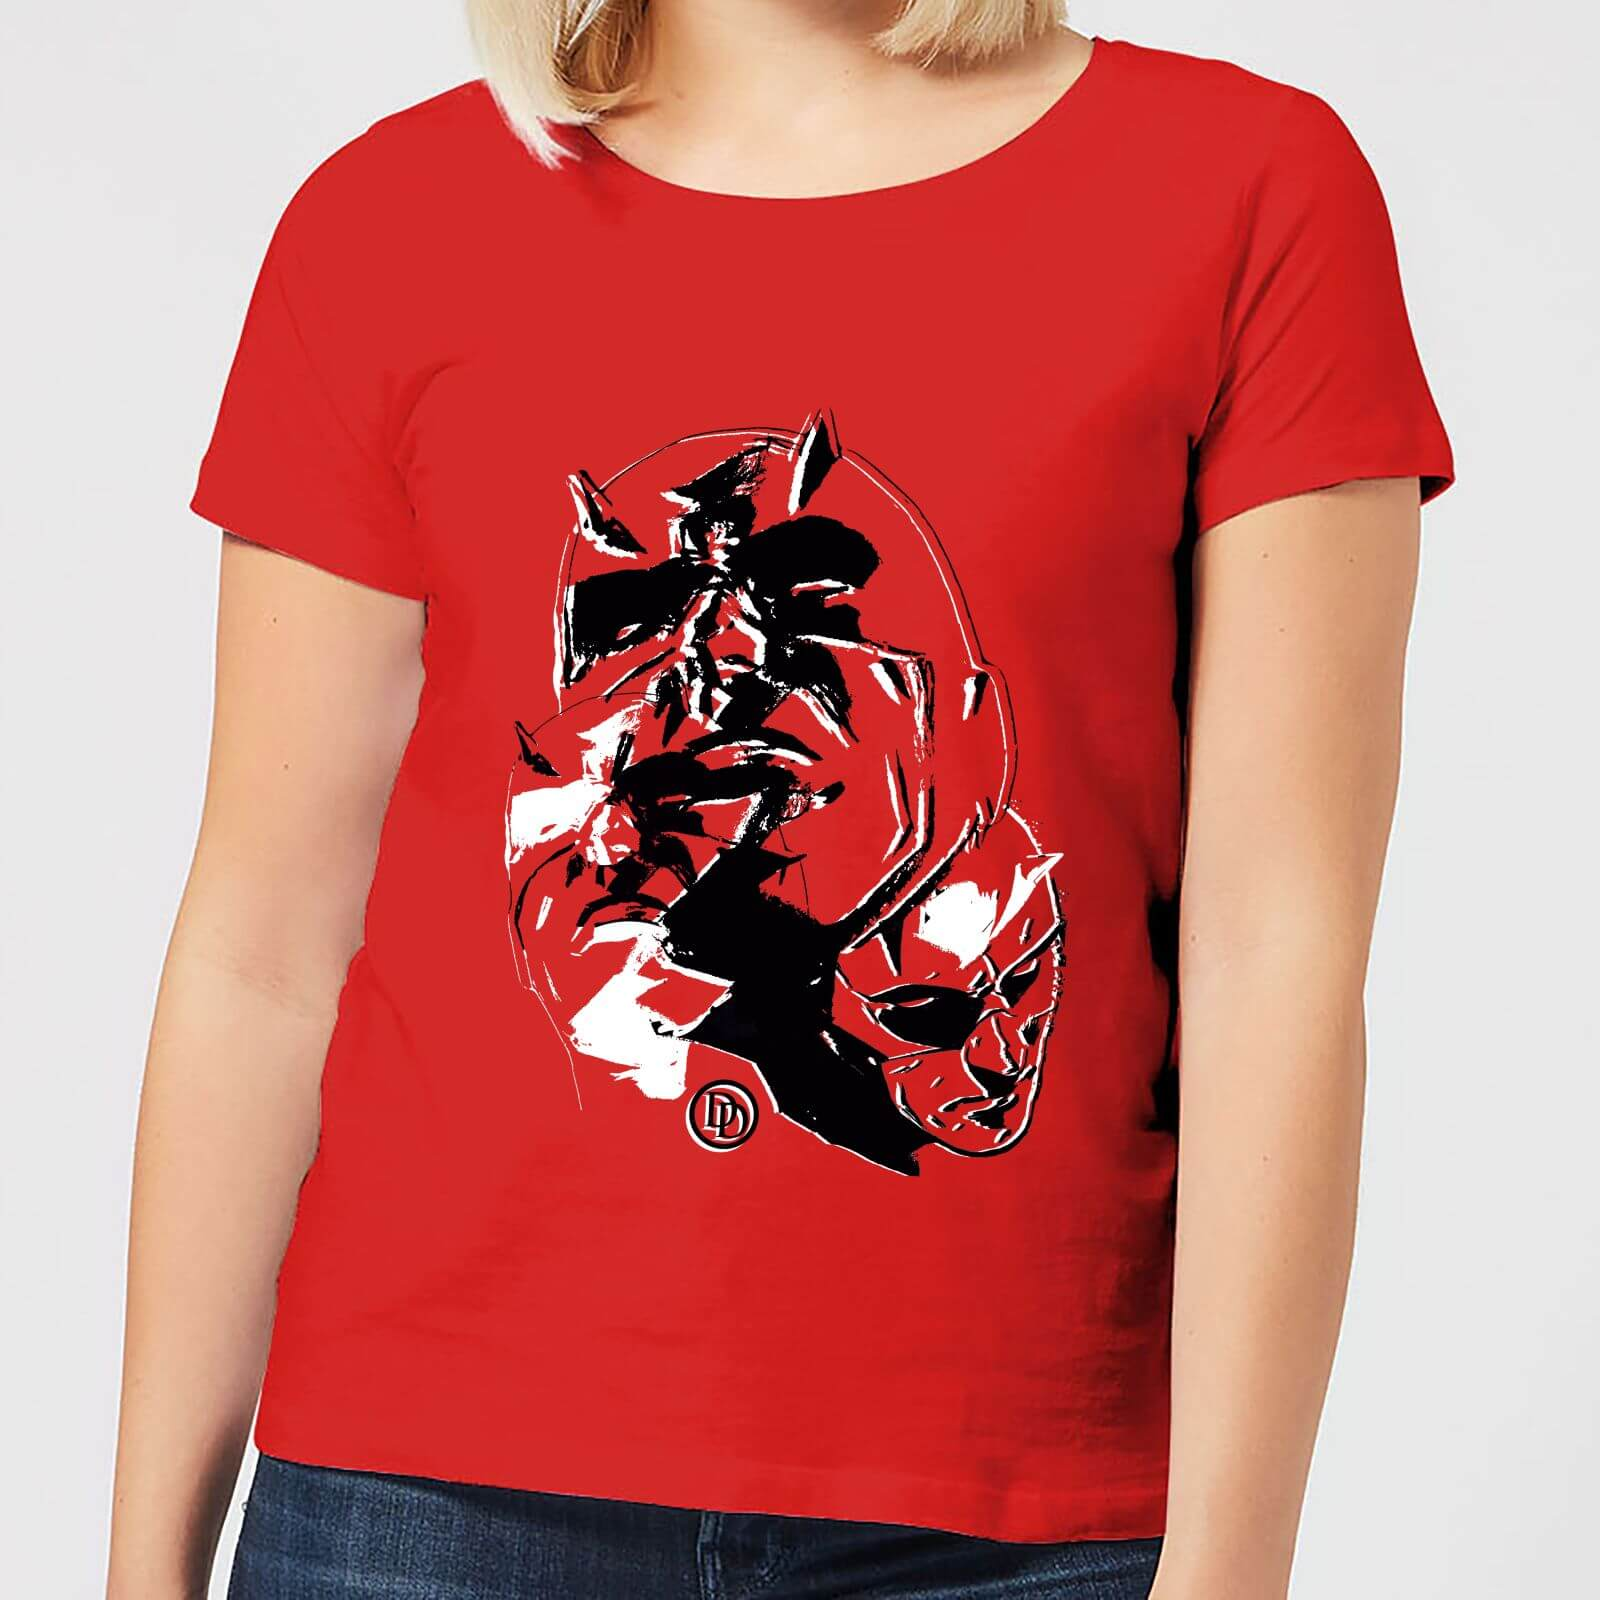 OfferteWeb.click 63-t-shirt-marvel-knights-daredevil-layered-faces-rosso